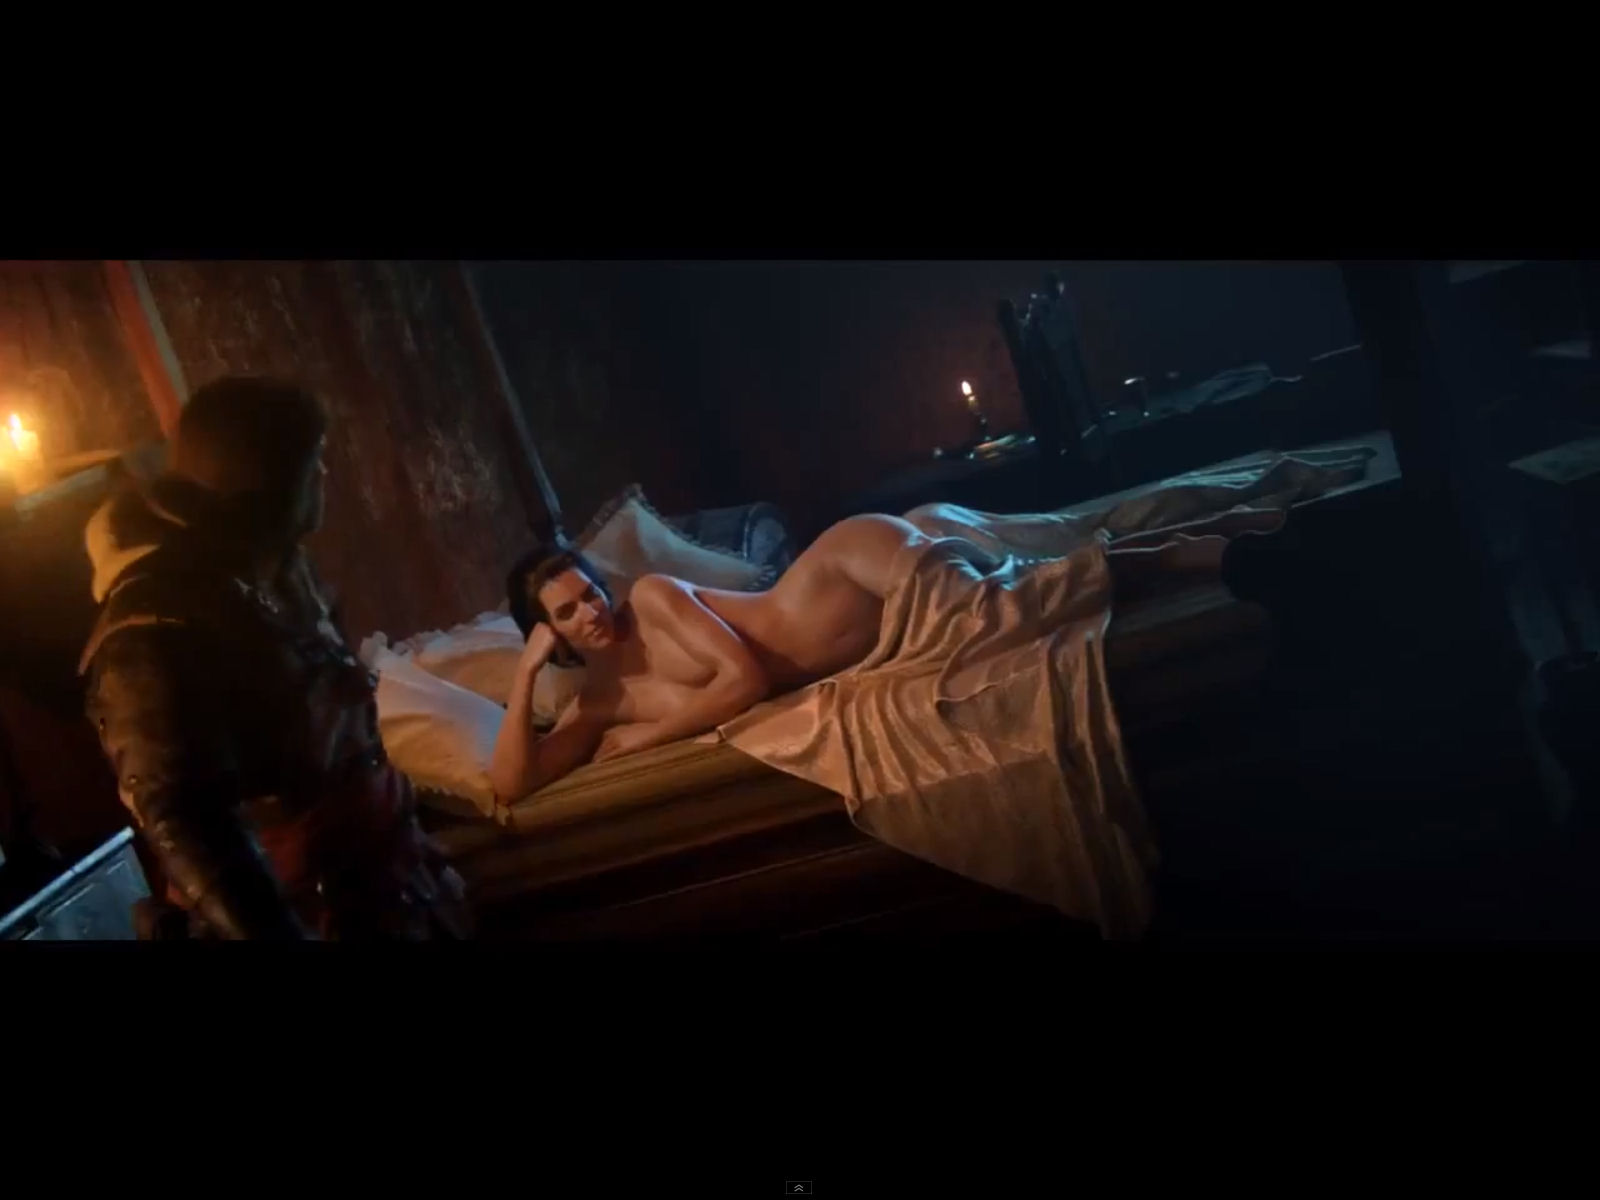 Assassin's creed naked girl porn video